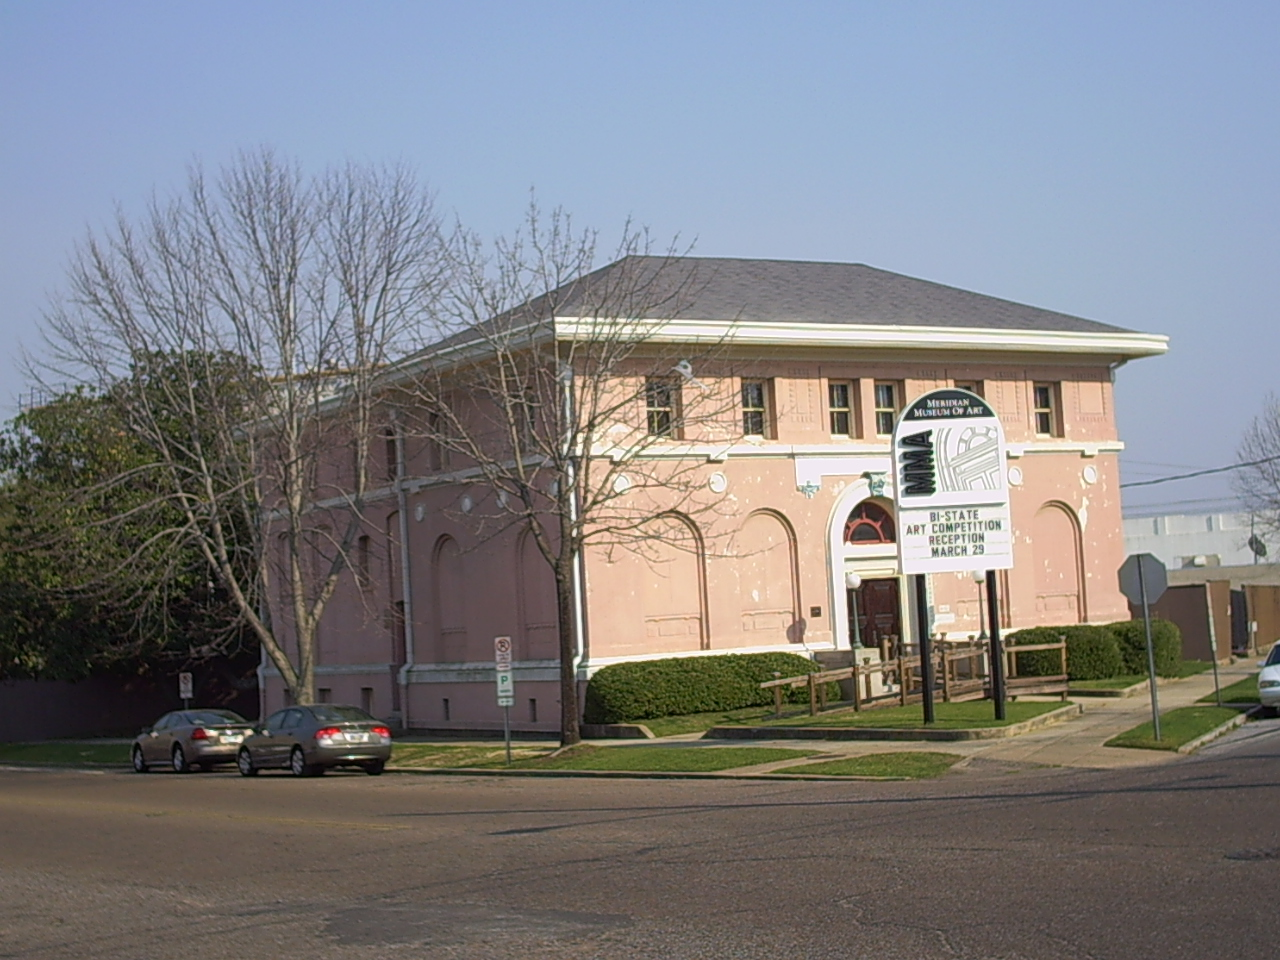 The Meridian Museum of Art opened in late 1970. The building itself was constructed in 1884 as the First Presbyterian Church, then becoming a library from 1913 to 1967.